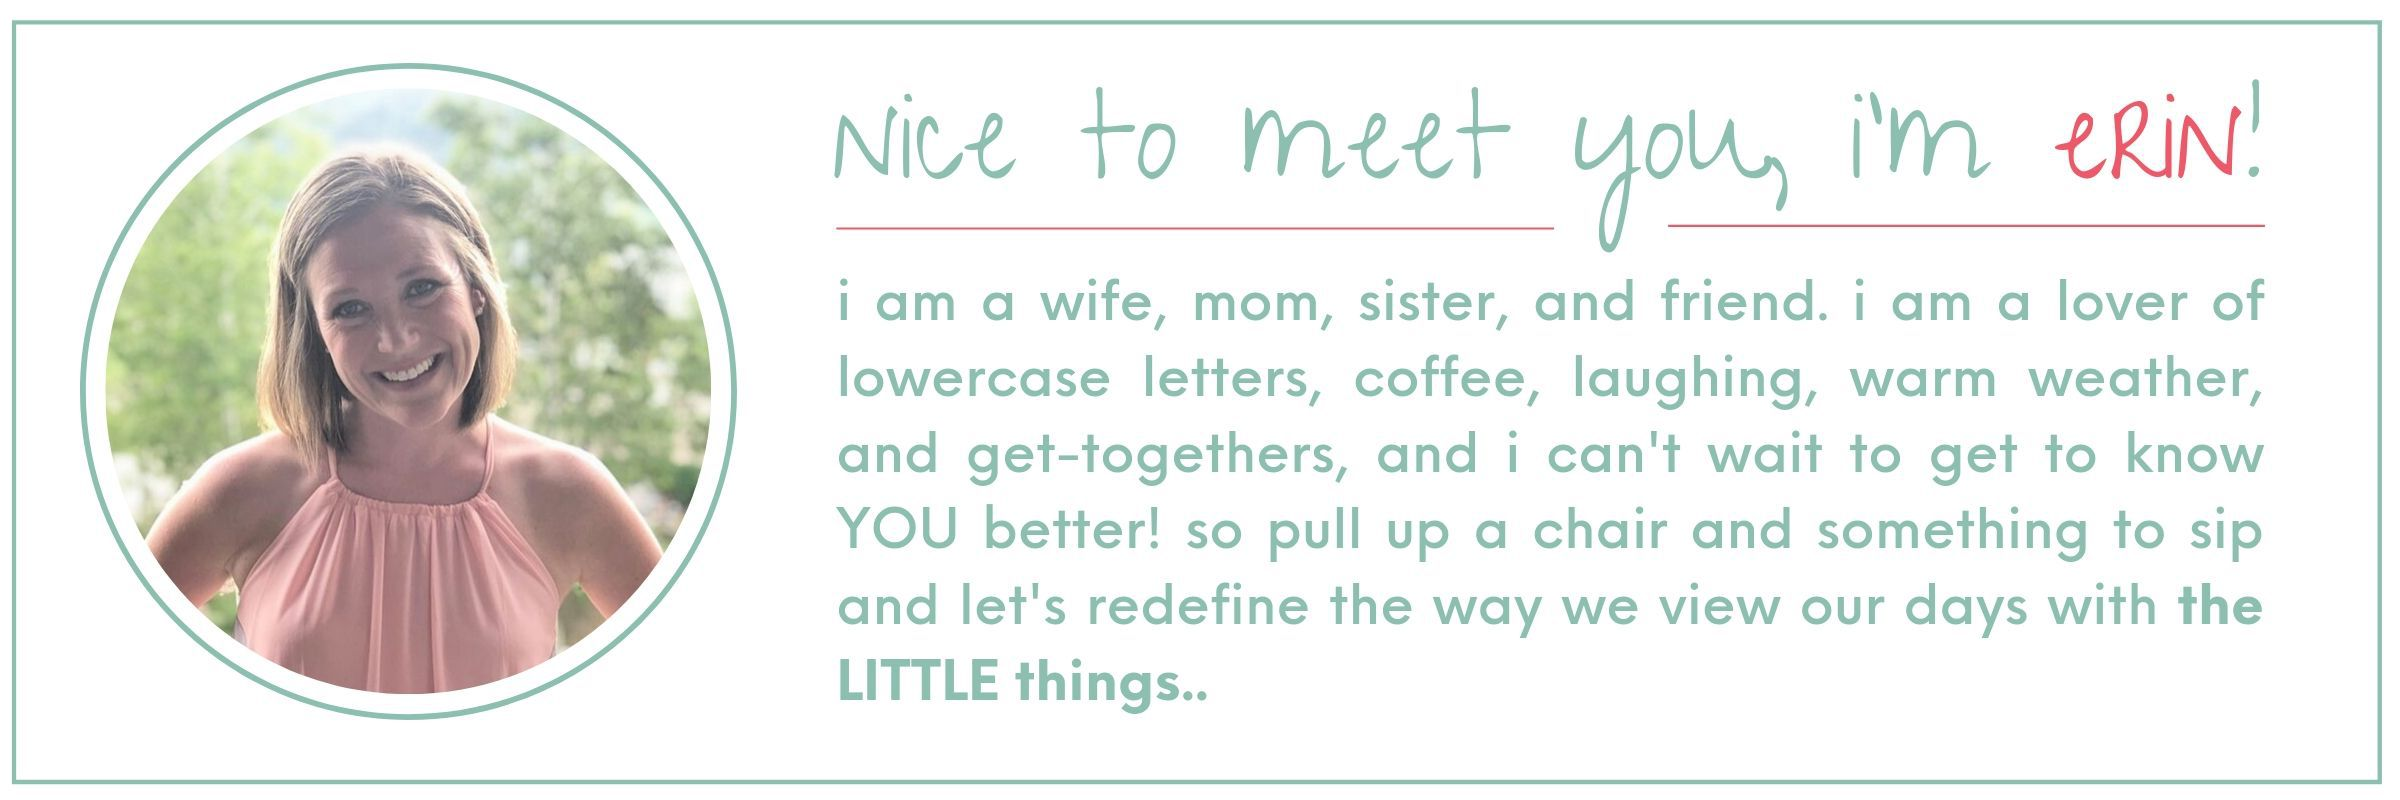 beloved _ front page 4 _ nice to meet you